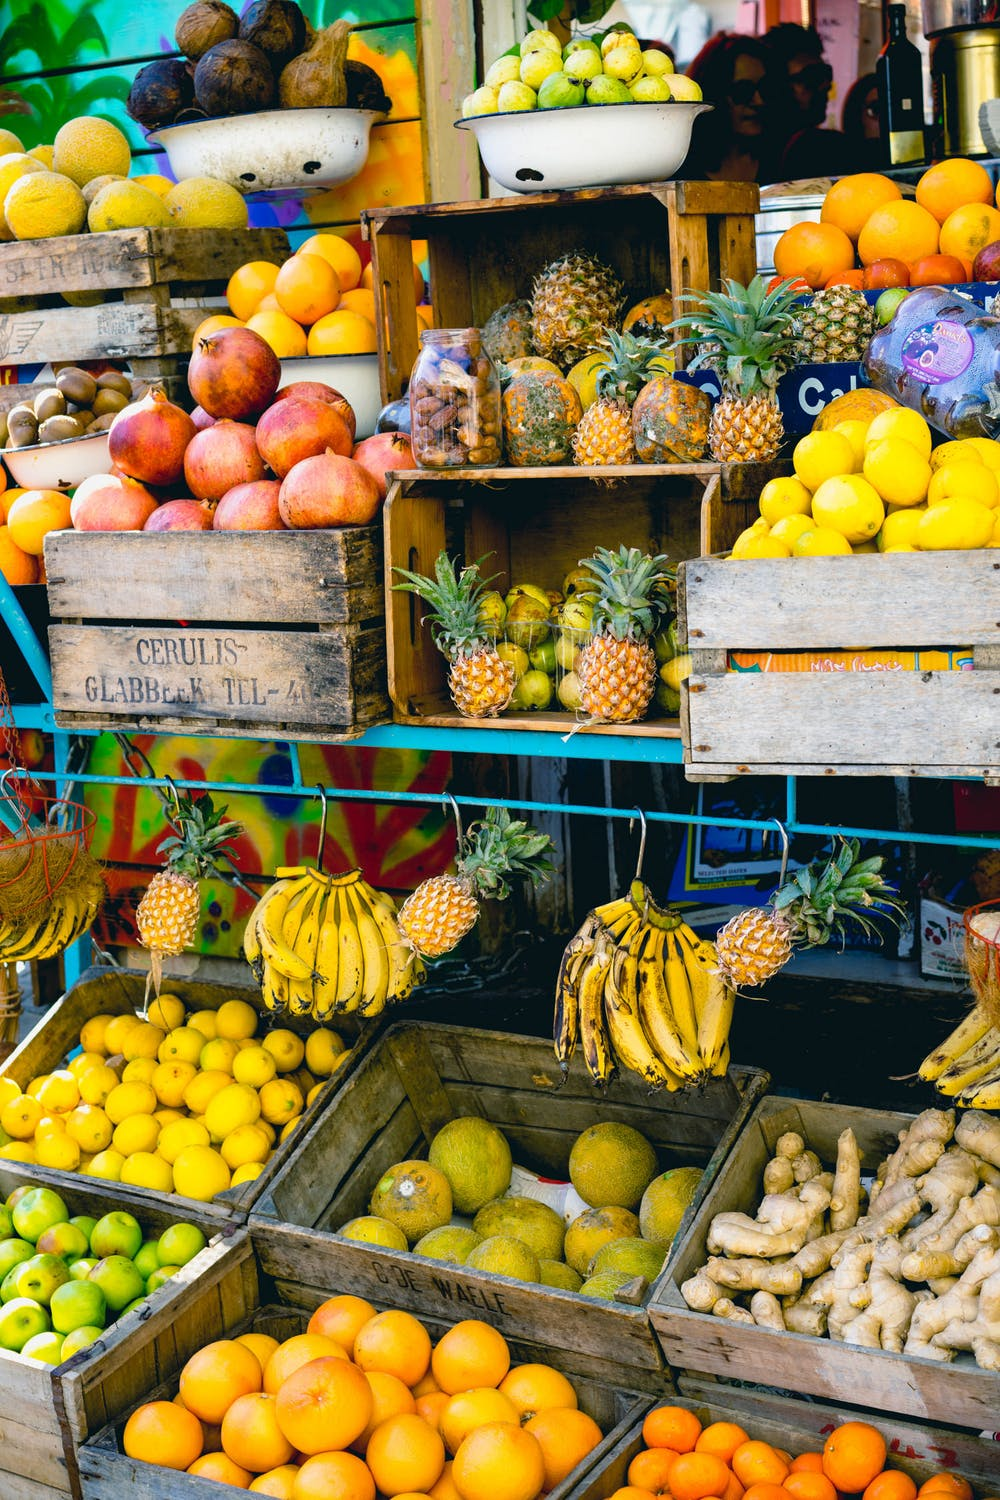 Fruit for sale jaffa market hipster stores Yafo Israel